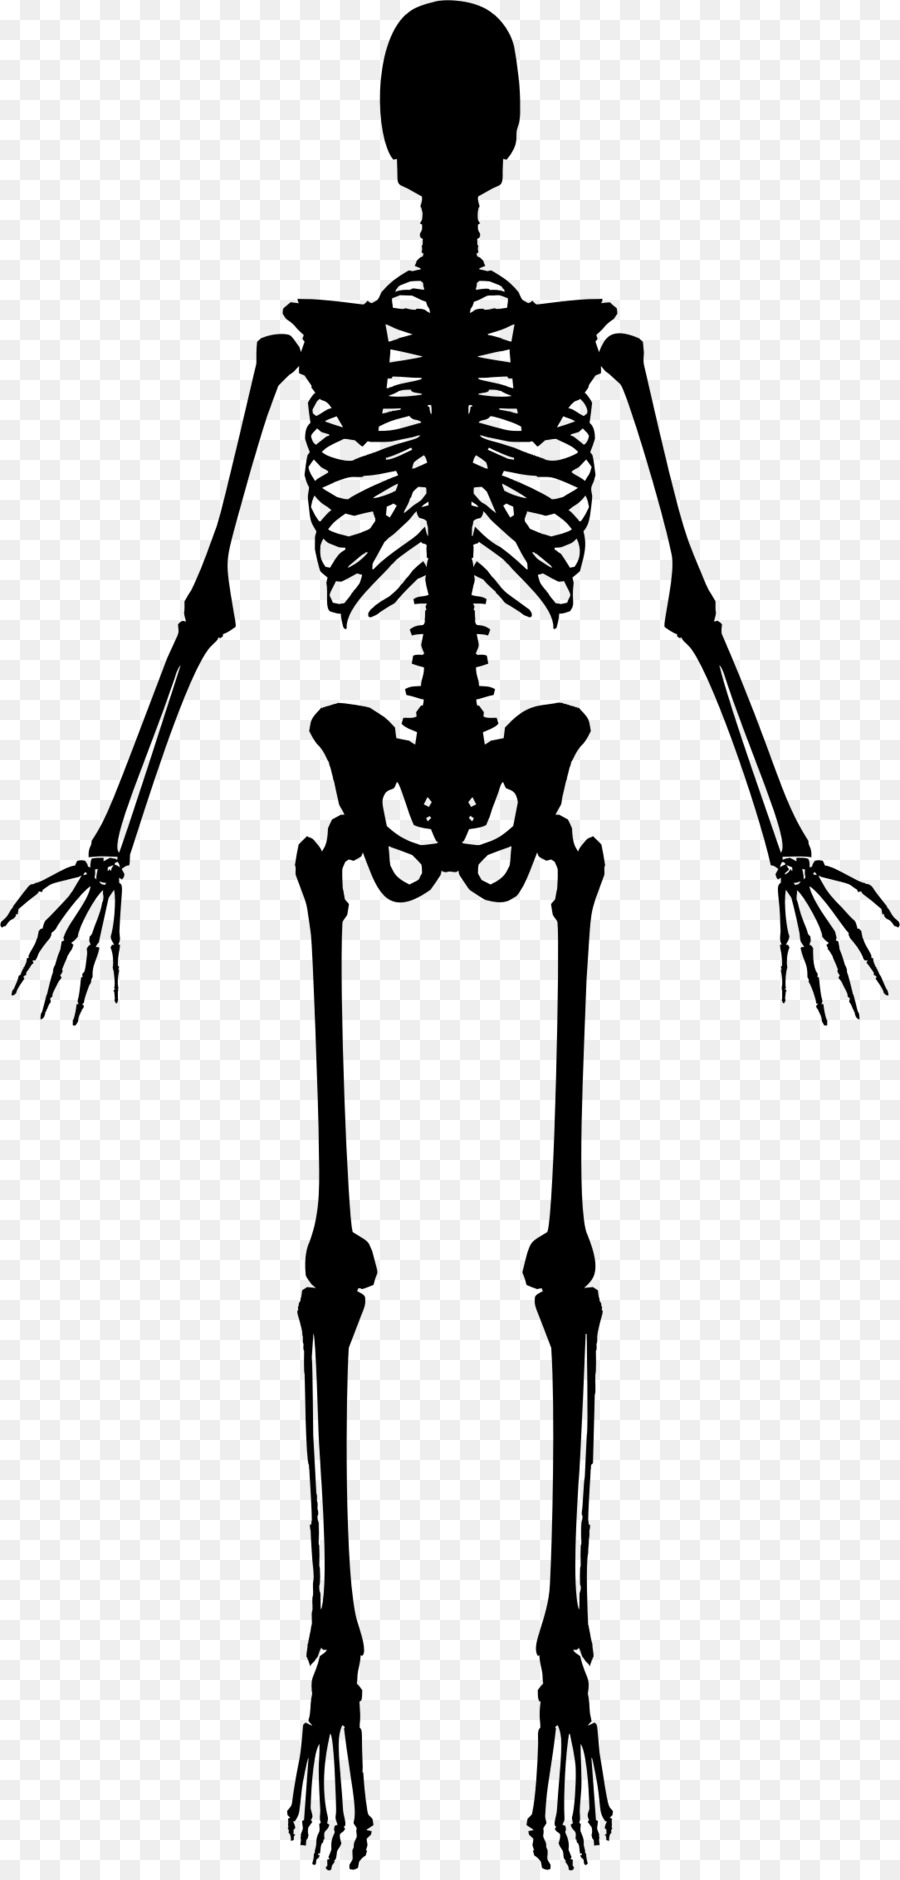 The Human Skeleton Clip Art Human Torch Png Download 10842254